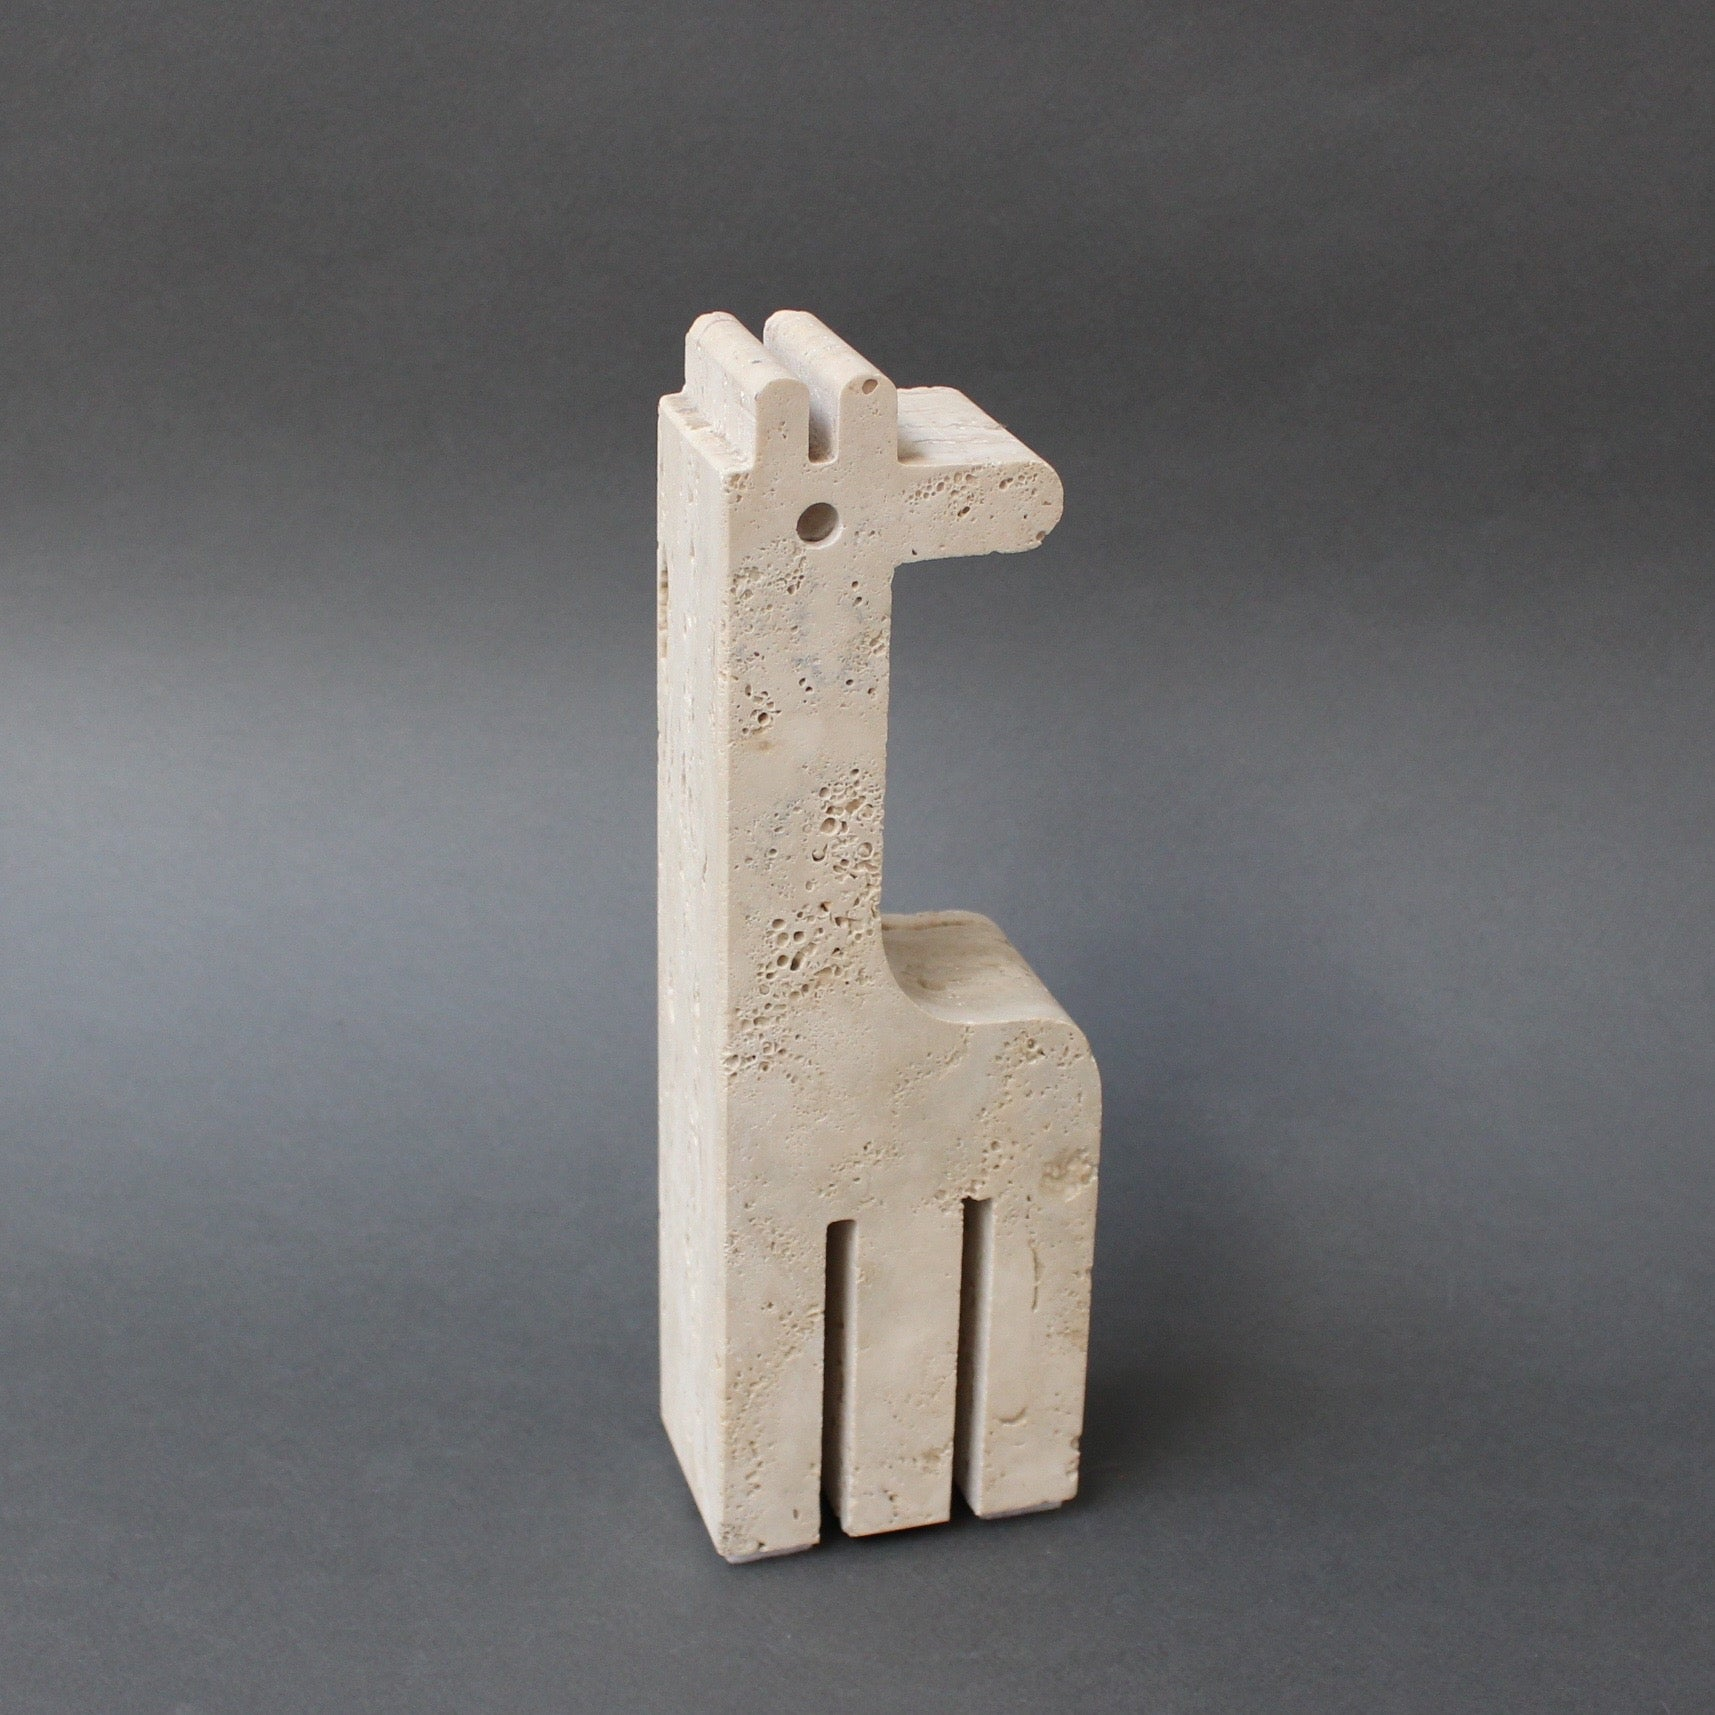 Travertine Giraffe Table Sculpture by Mannelli Bros of Florence, Italy (circa 1970s)